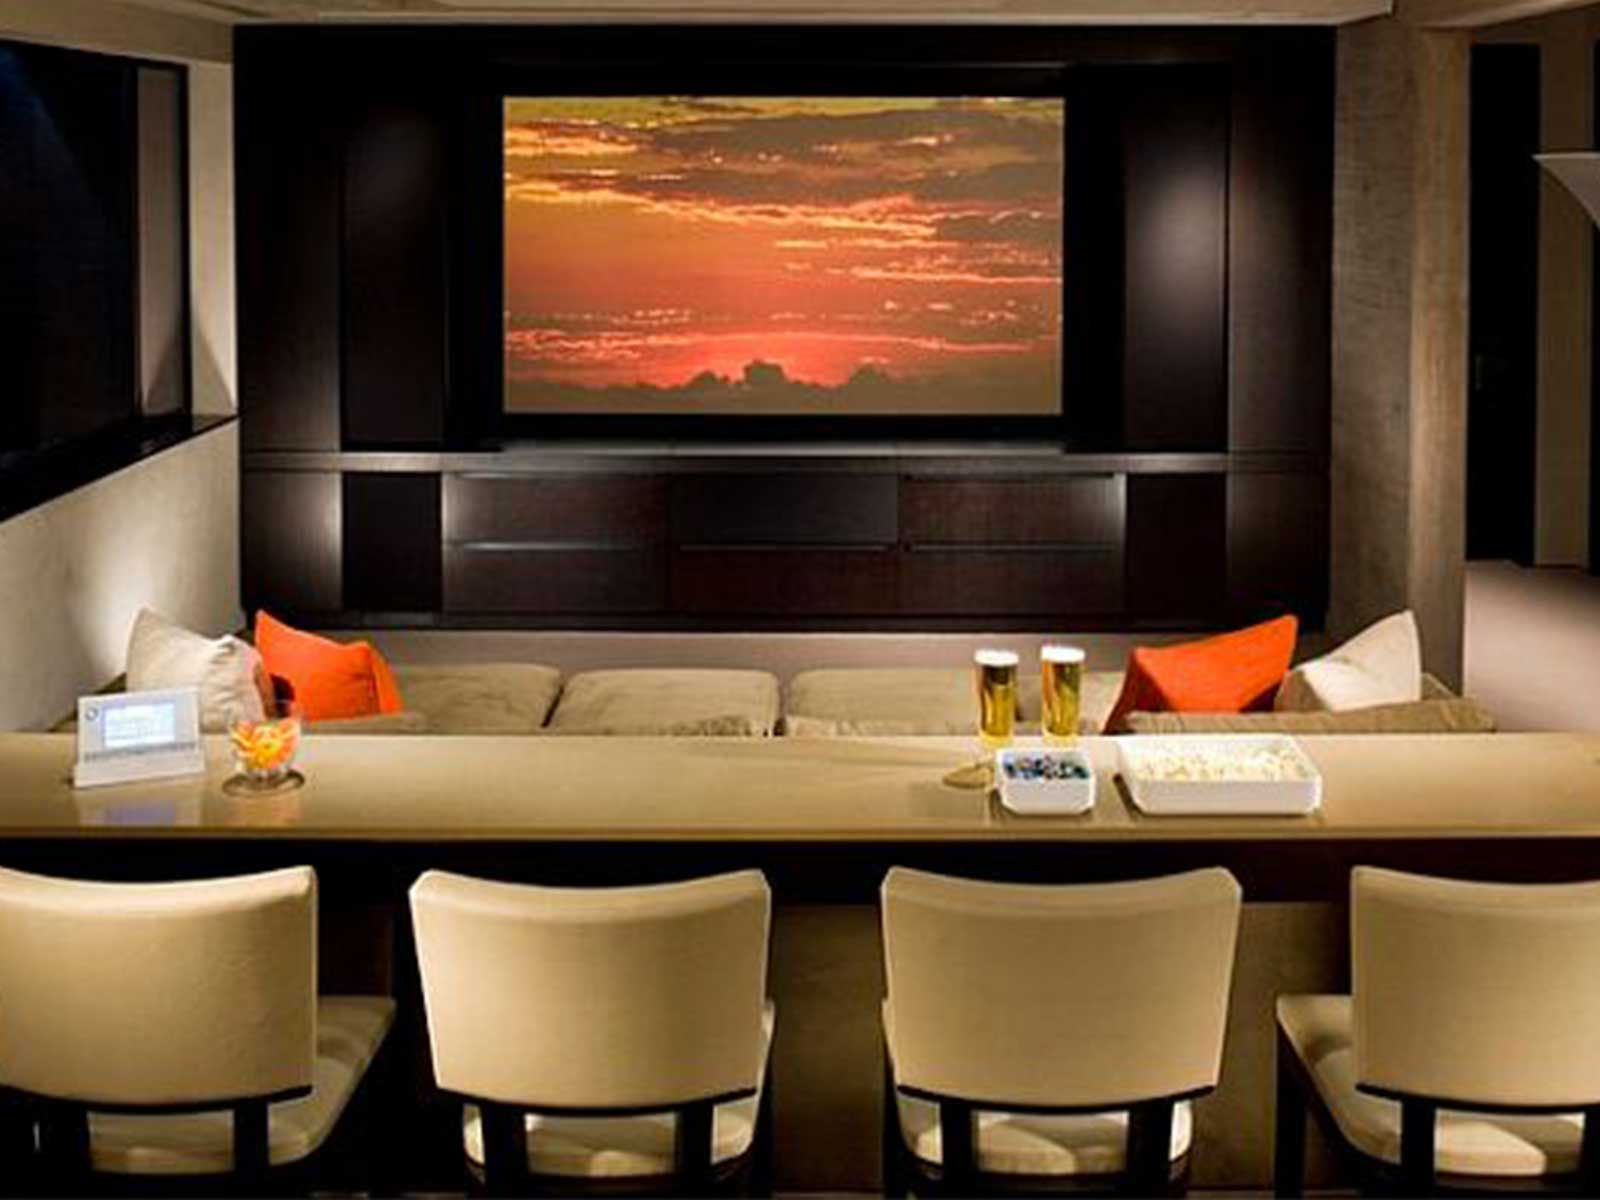 17 best images about design home theaters on pinterest home theaters theater rooms and uxui designer - Home Theater Design Ideas